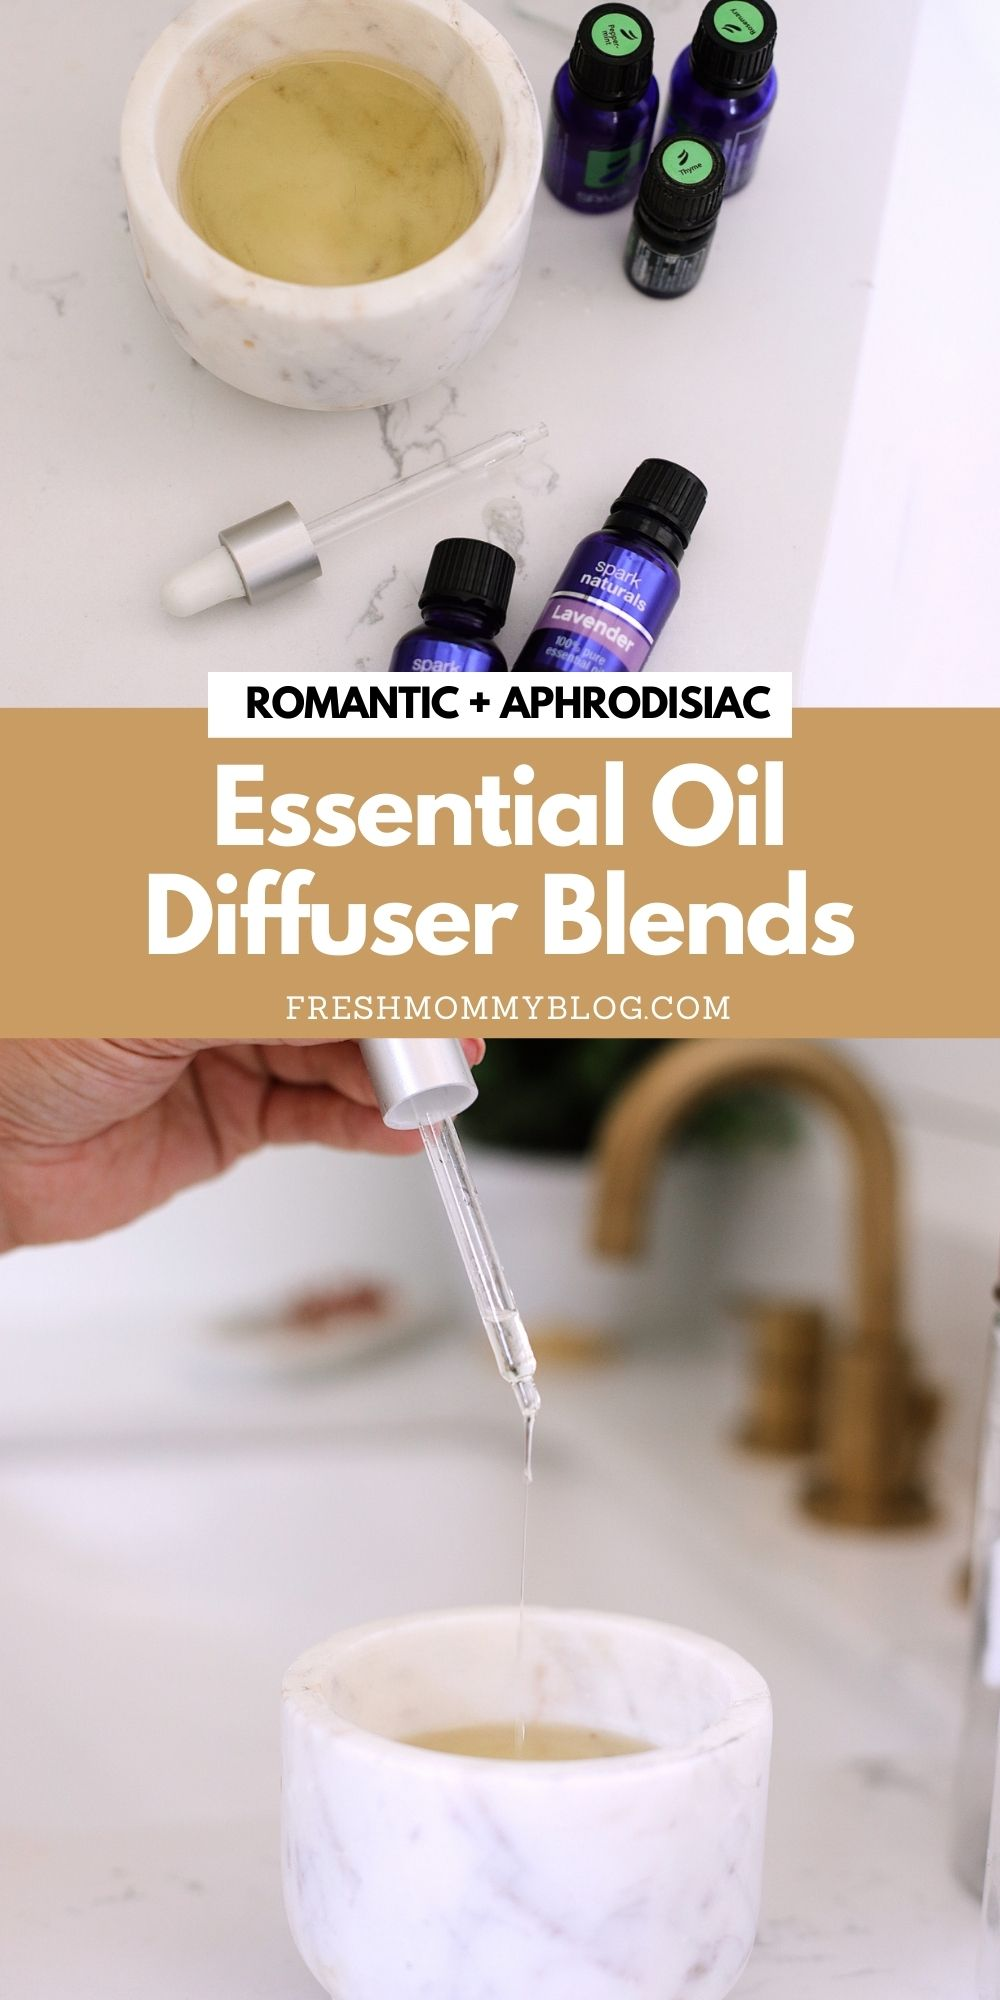 3 Captivating Essential Oil Diffuser Blends for Valentine's Day